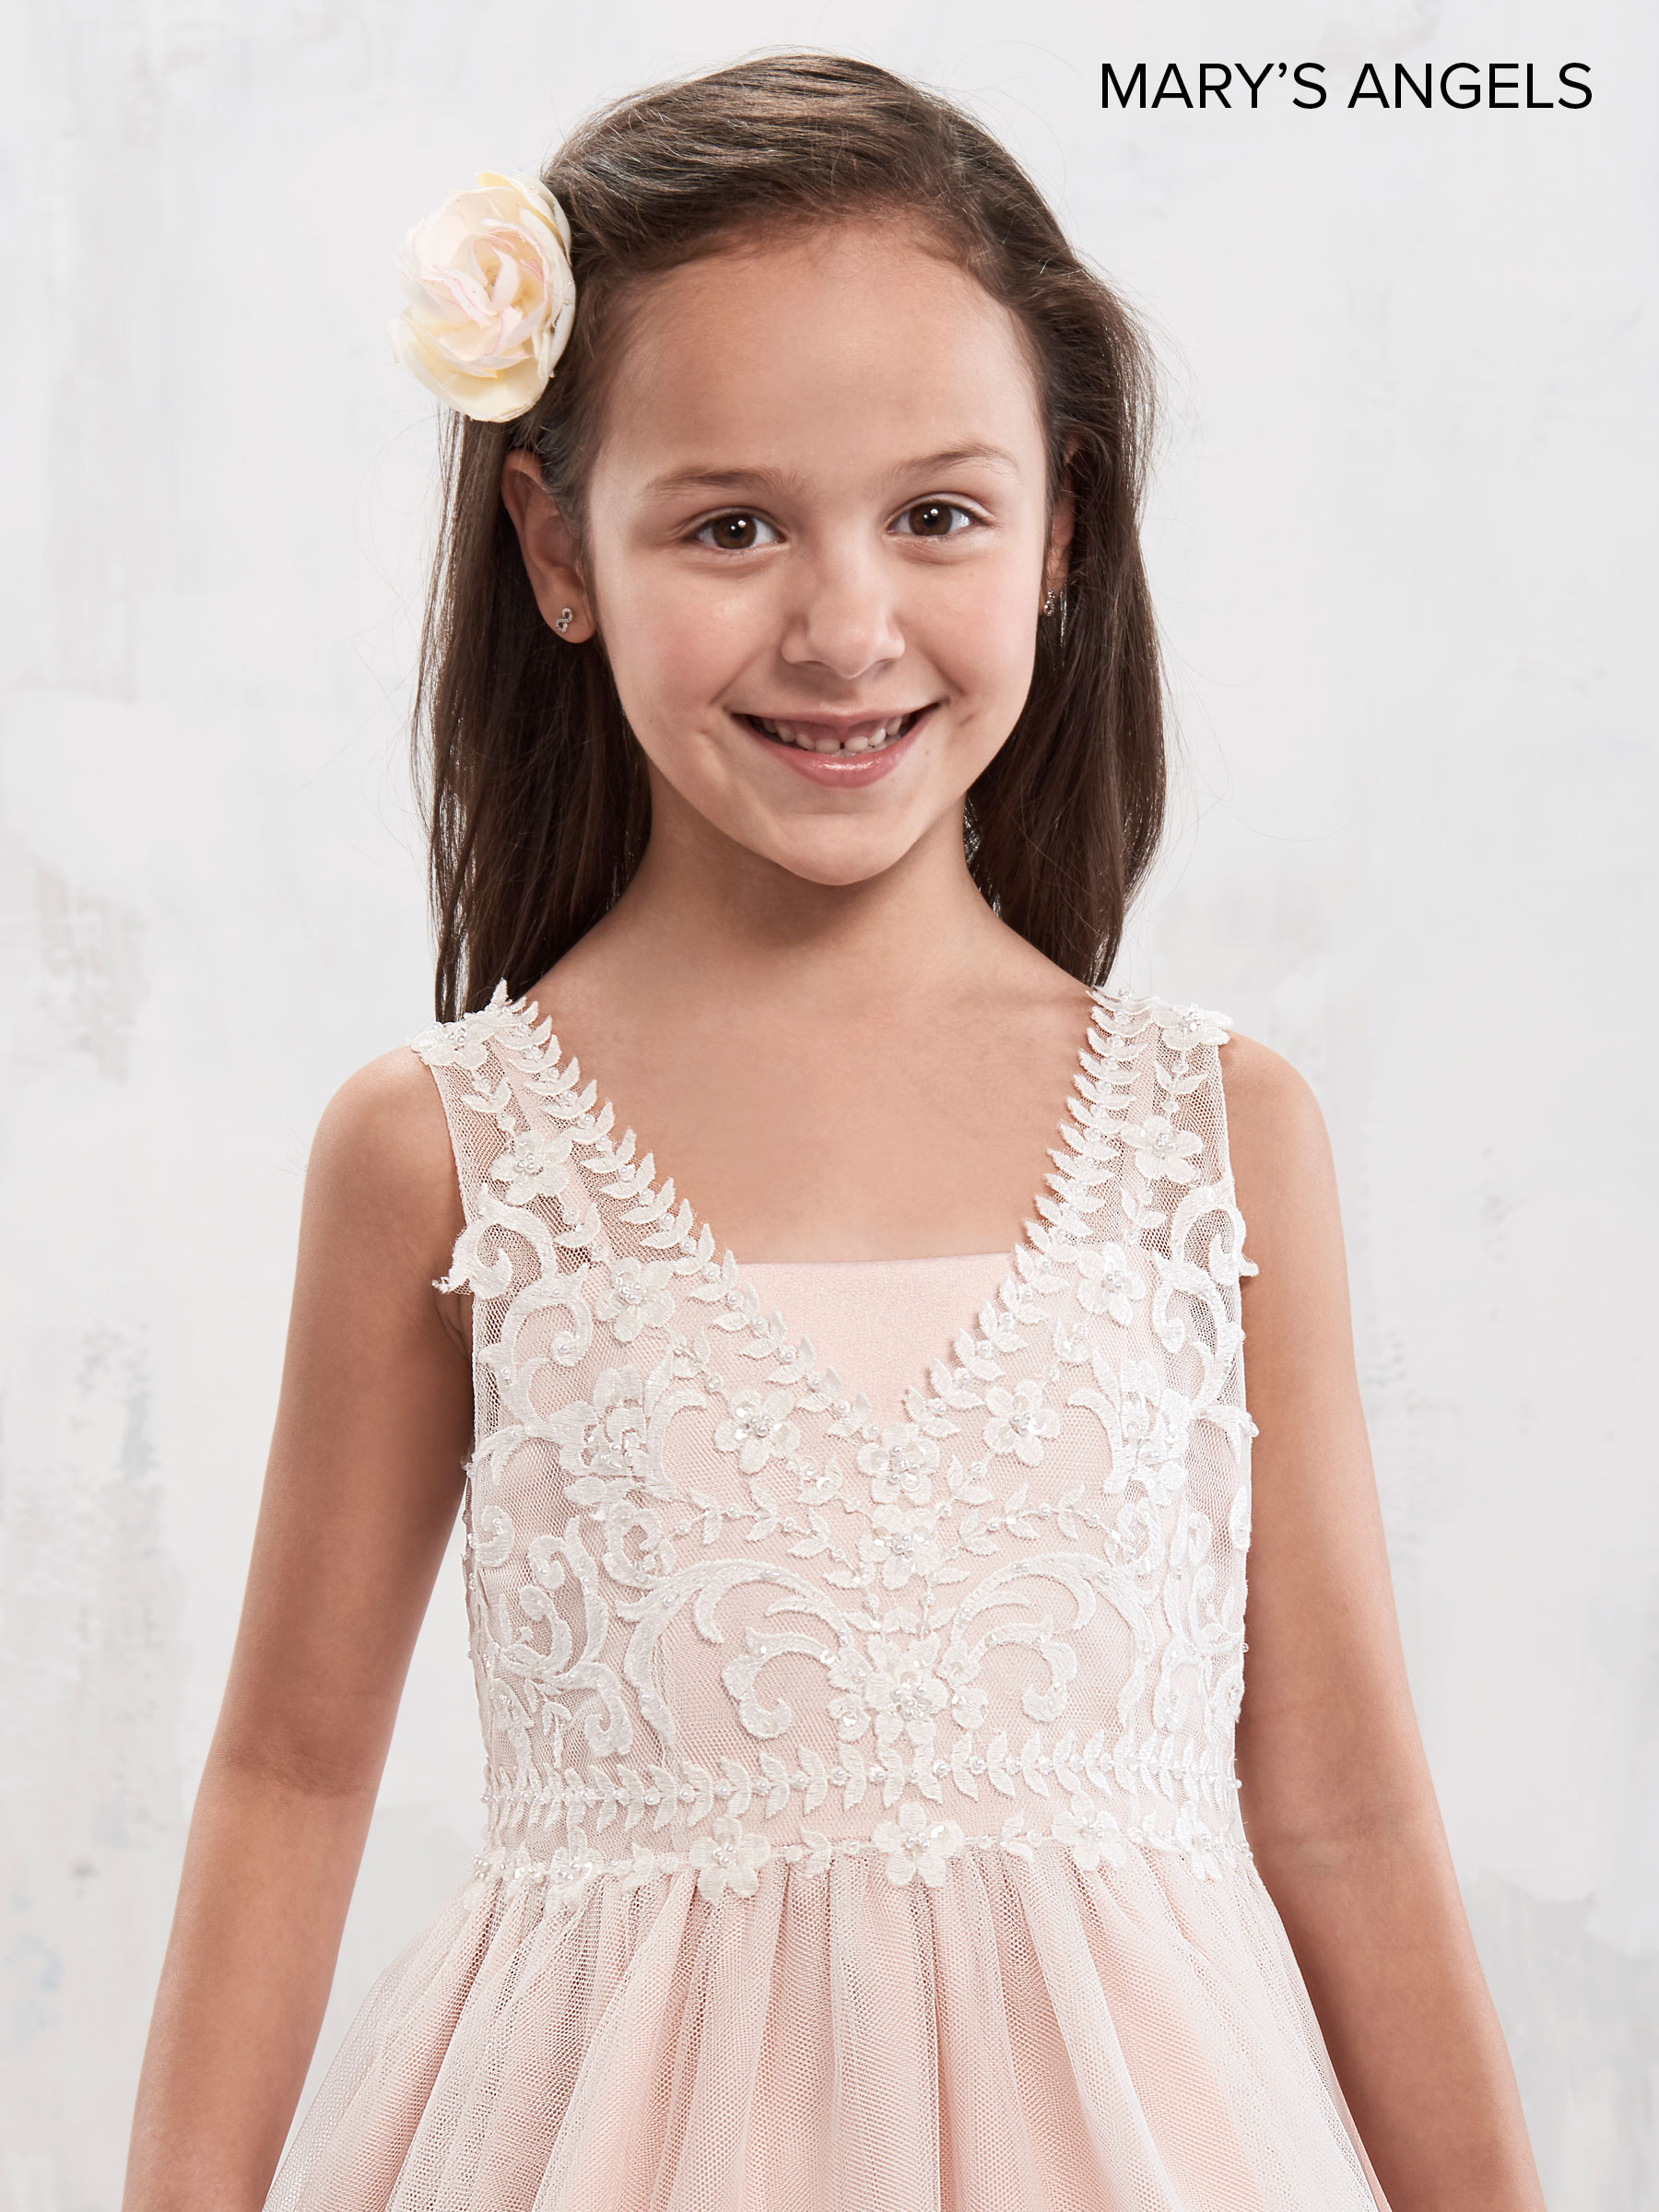 Angel Flower Girl Dresses | Mary's Angels | Style - MB9002